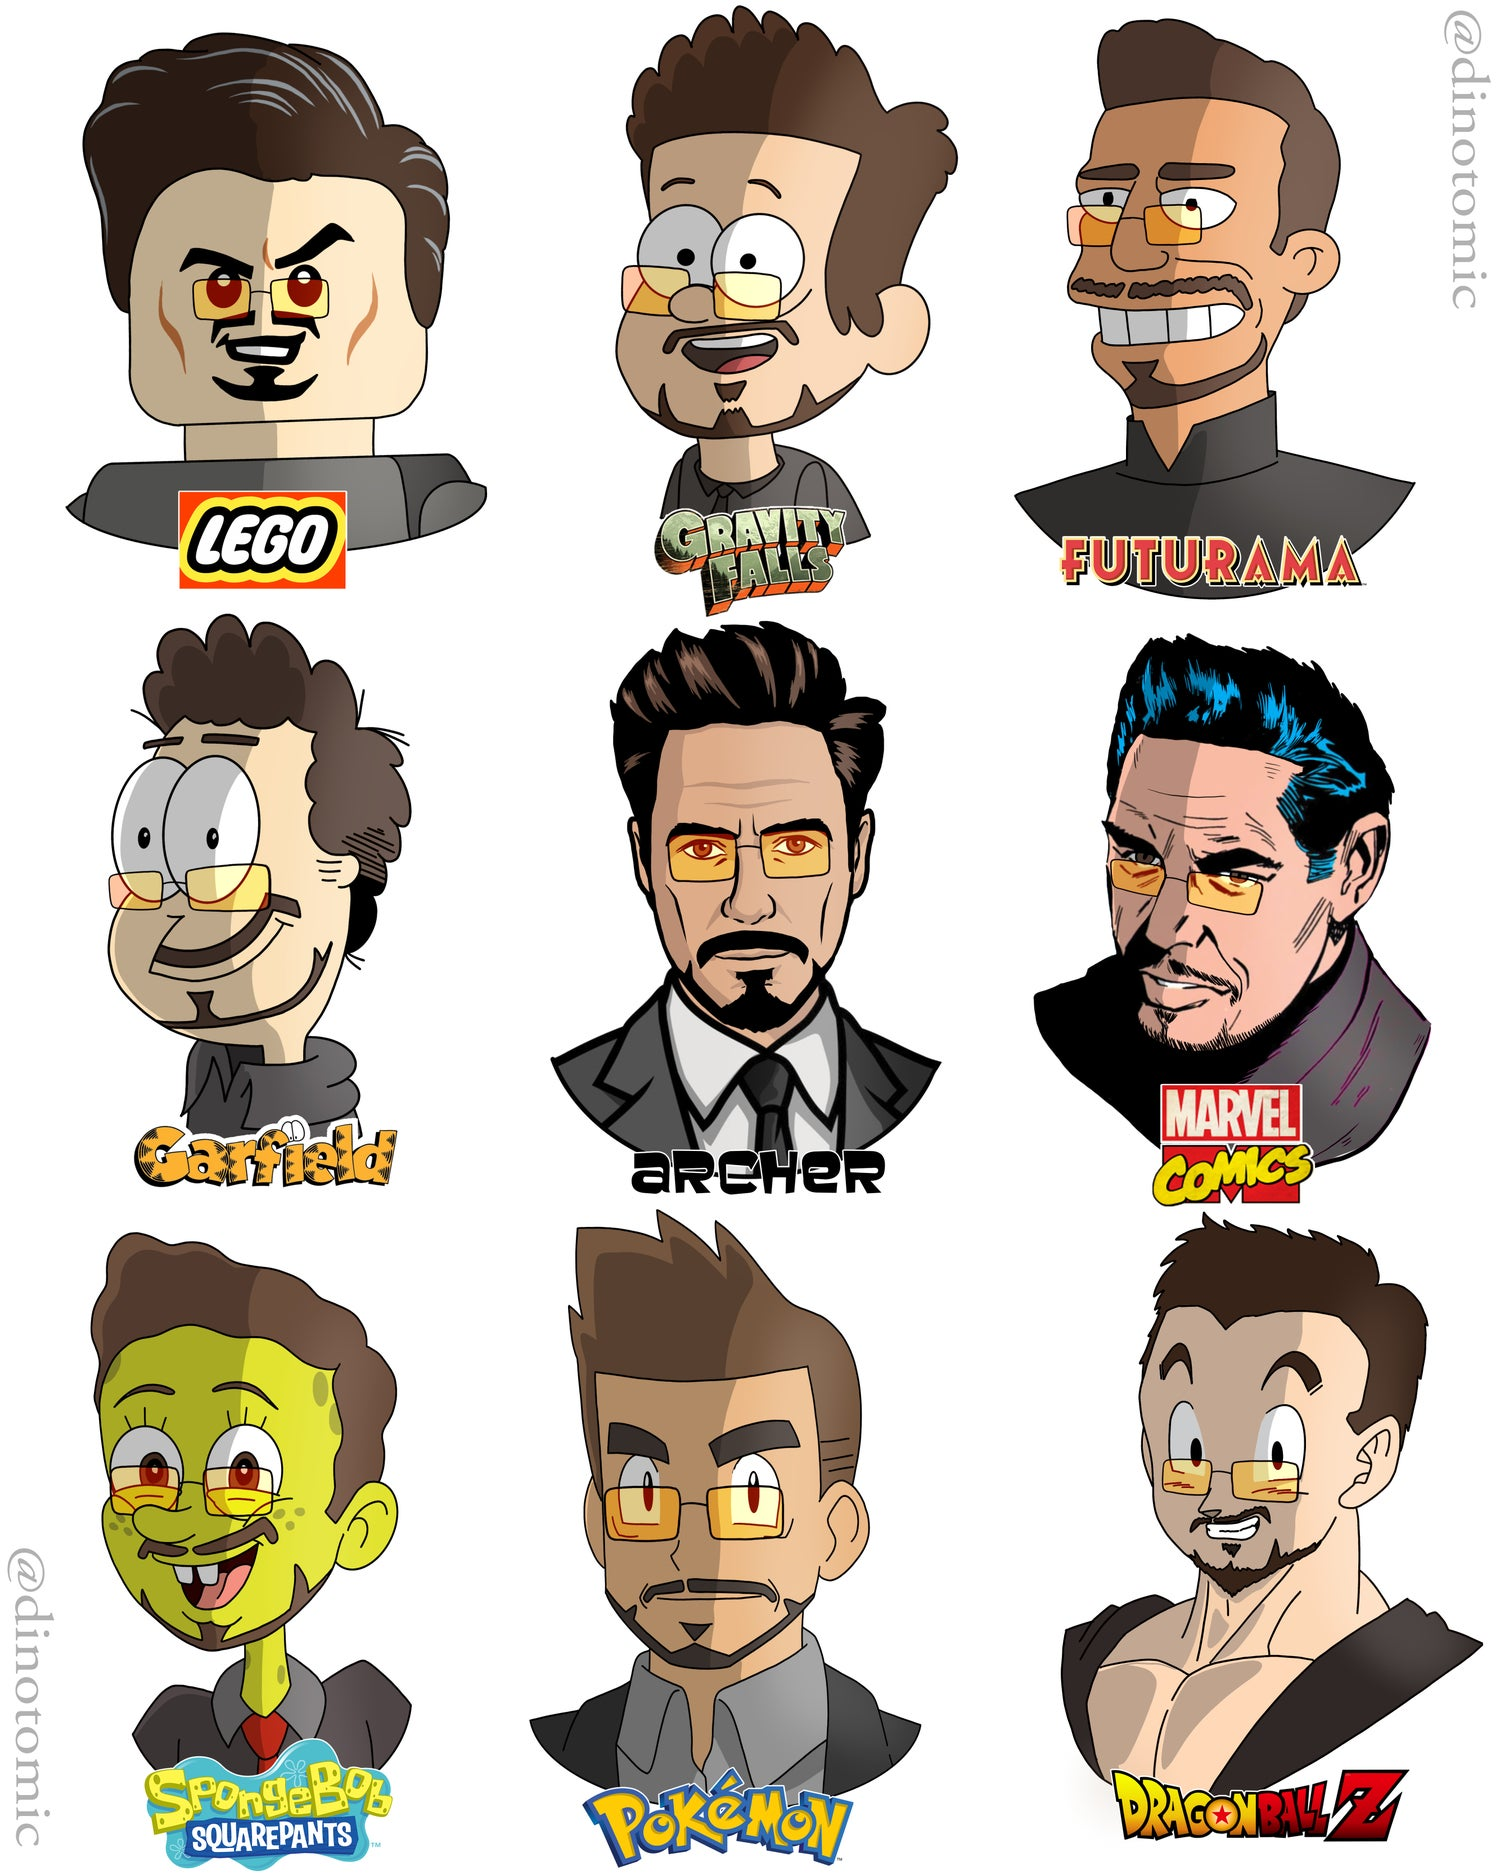 Image of #192 Iron Man in many styles